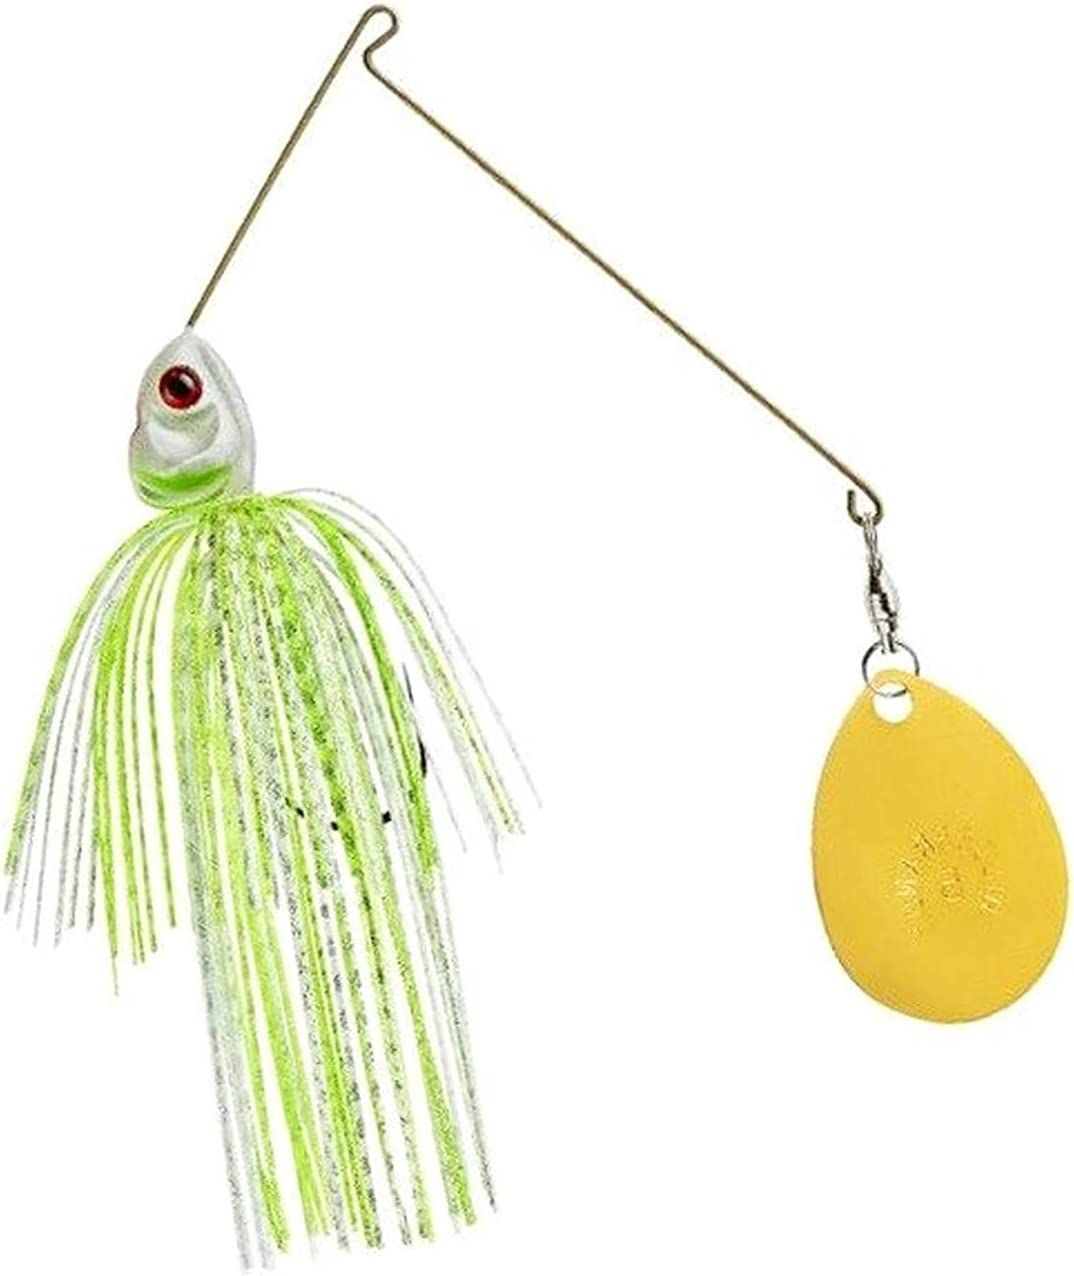 New White Chart Silver Ranking TOP9 Pearl Finally popular brand Lure Spinnerbait Fishing 1 Bai